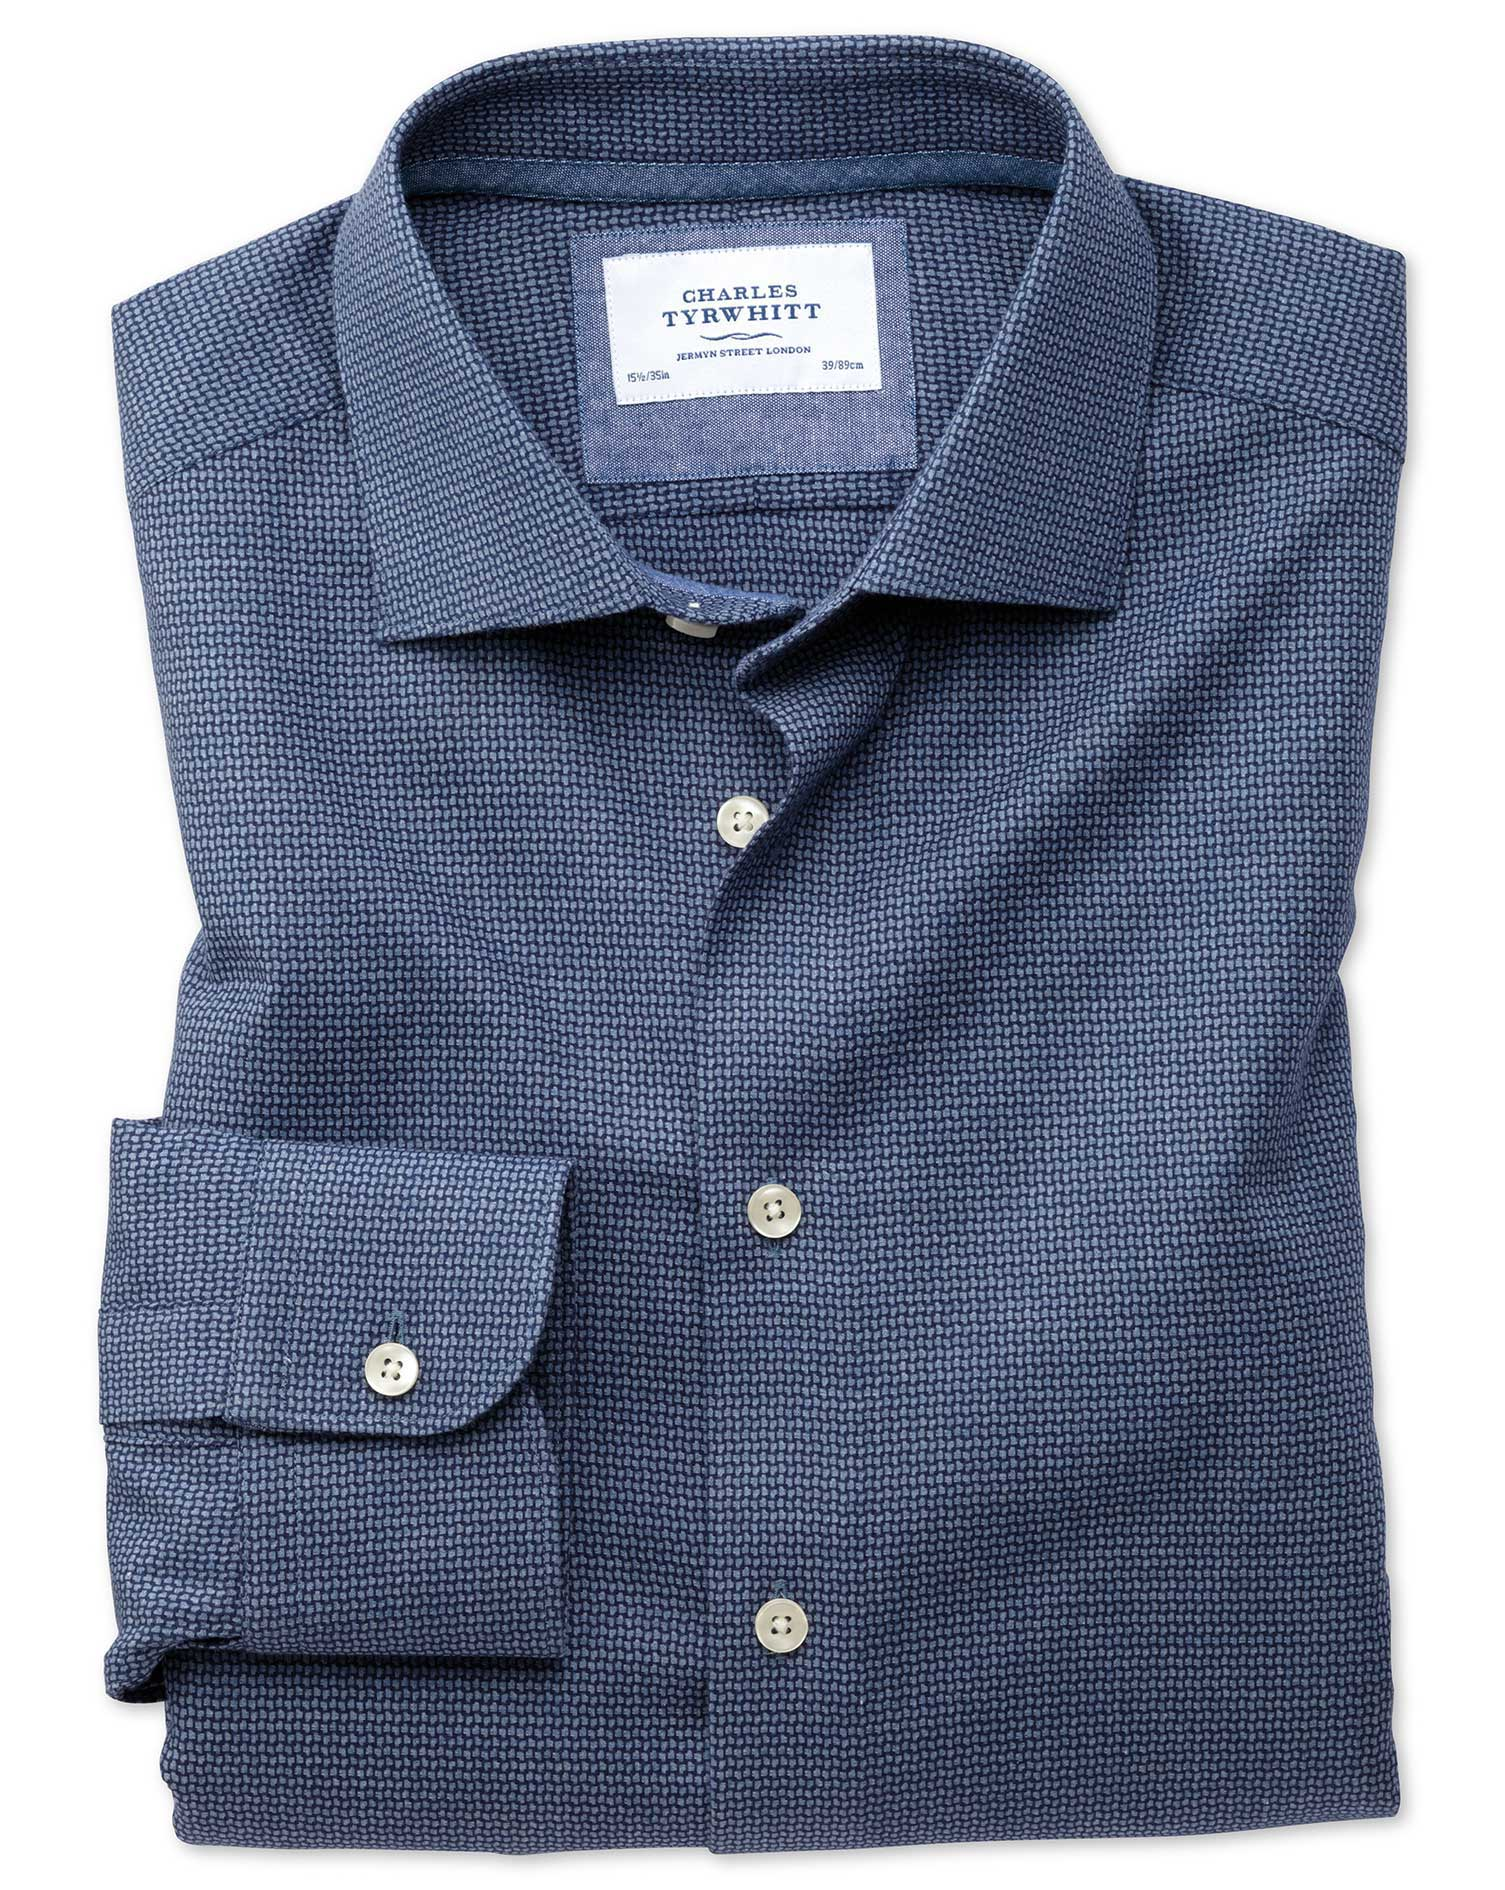 Extra Slim Fit Semi-Cutaway Business Casual Navy Patterned Cotton Formal Shirt Single Cuff Size 15.5